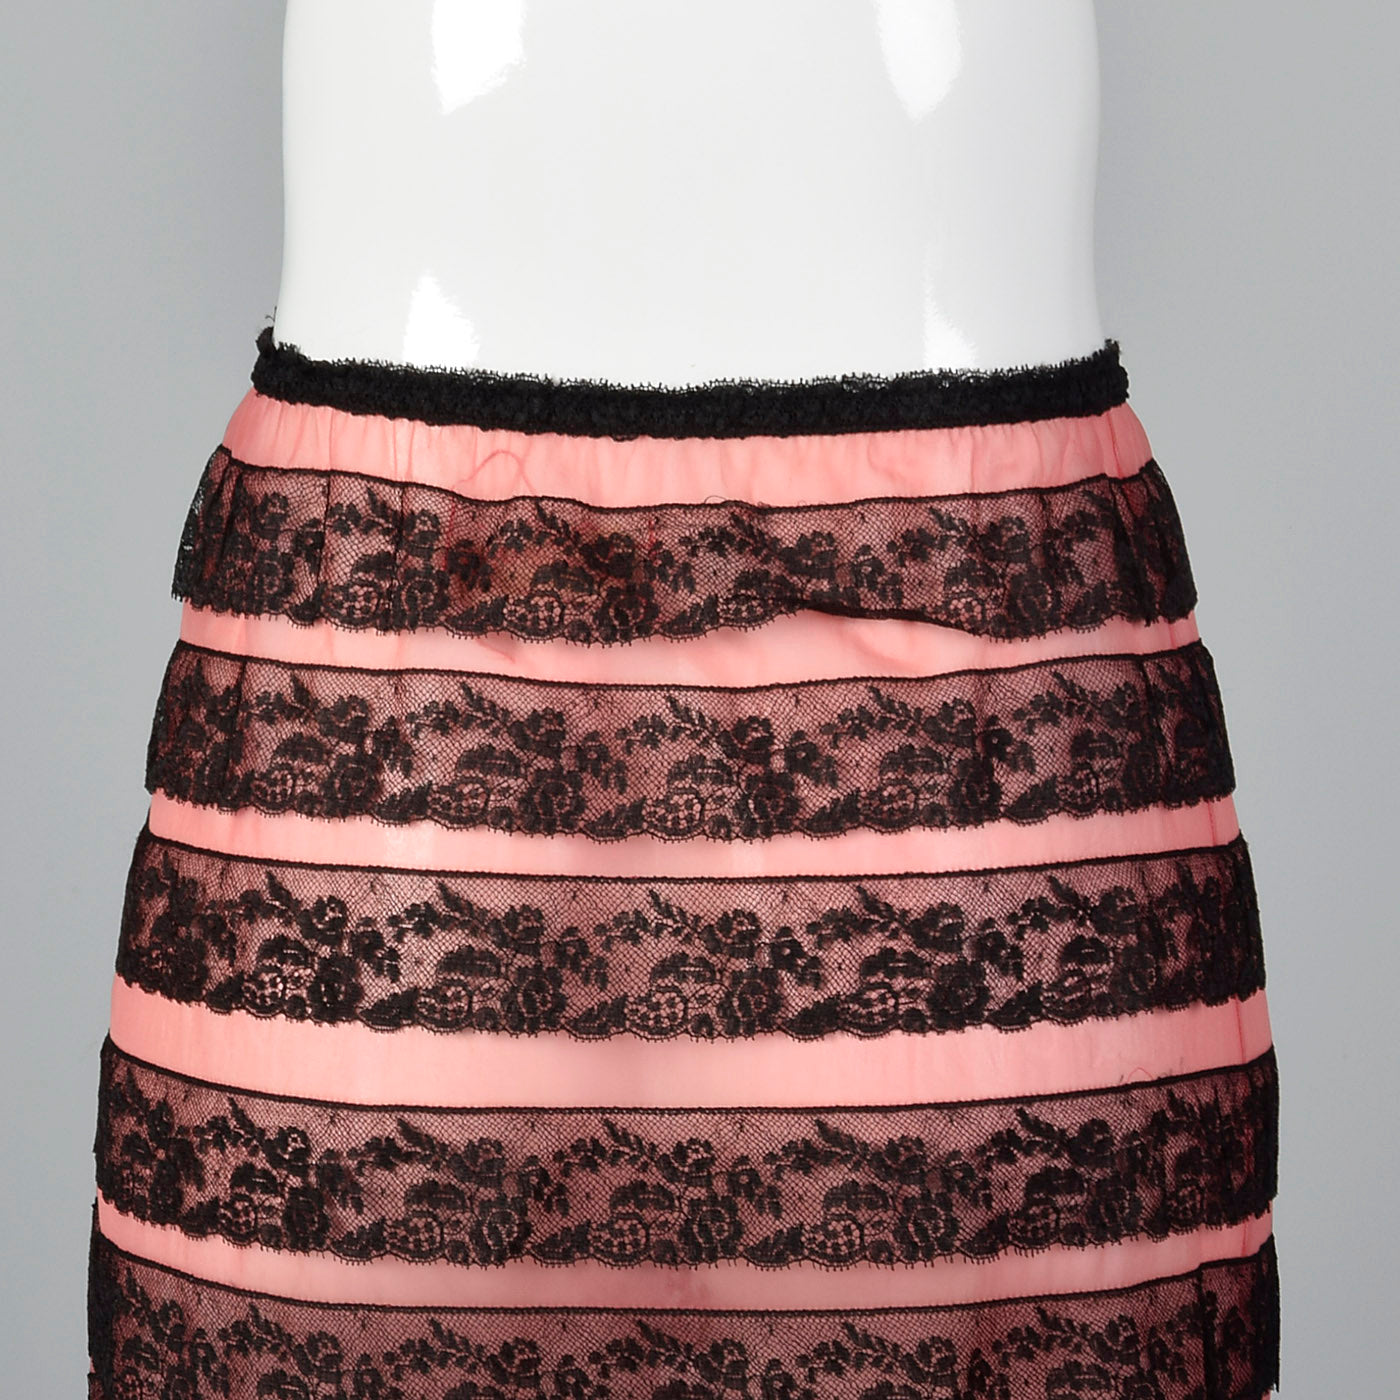 1950s Schiaparelli Pink Half Slip with Layered Black Lace